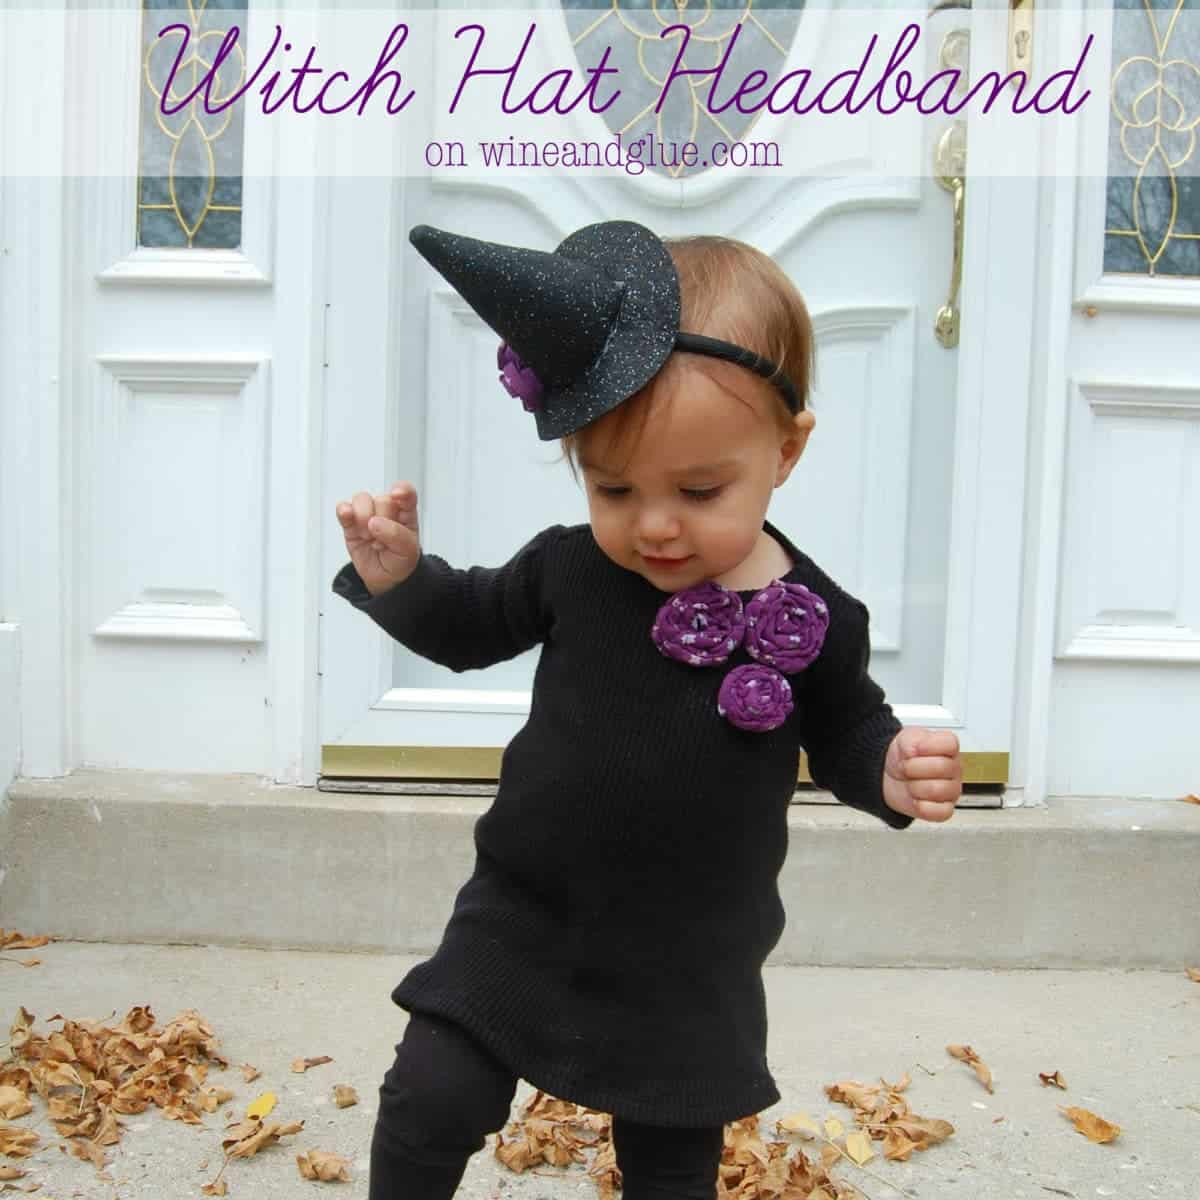 witch_hat_headband